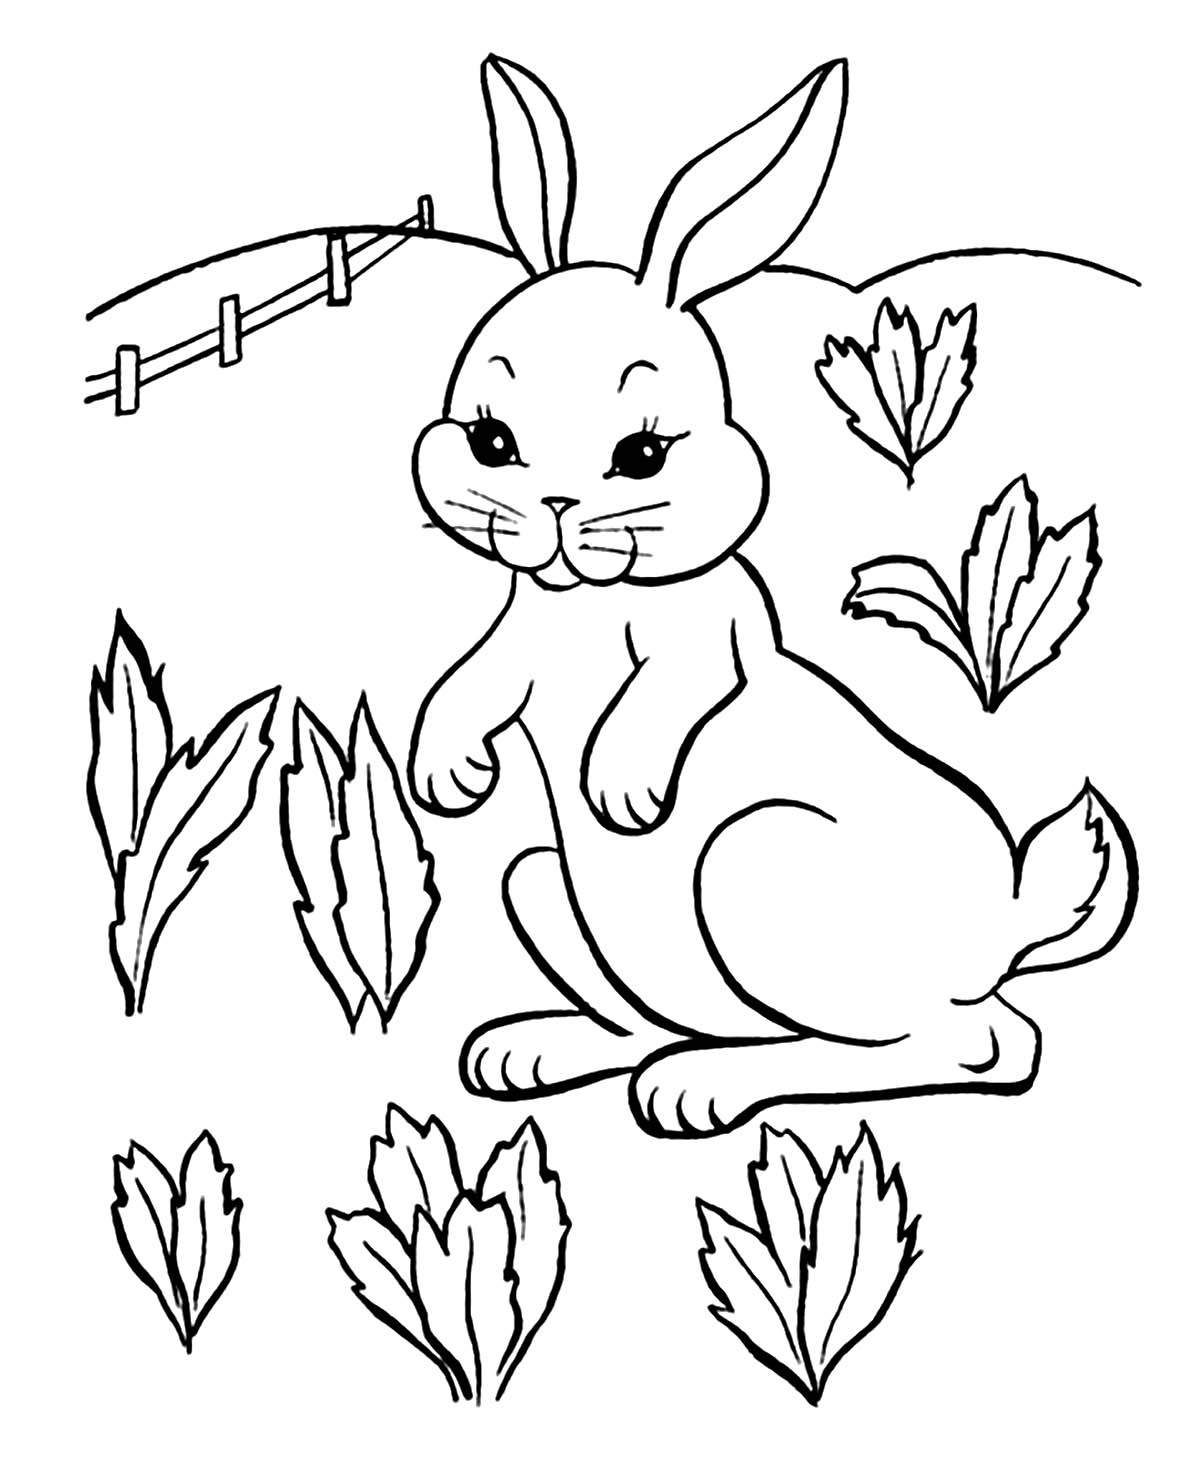 rabbit coloring page rabbit to download rabbit kids coloring pages rabbit coloring page